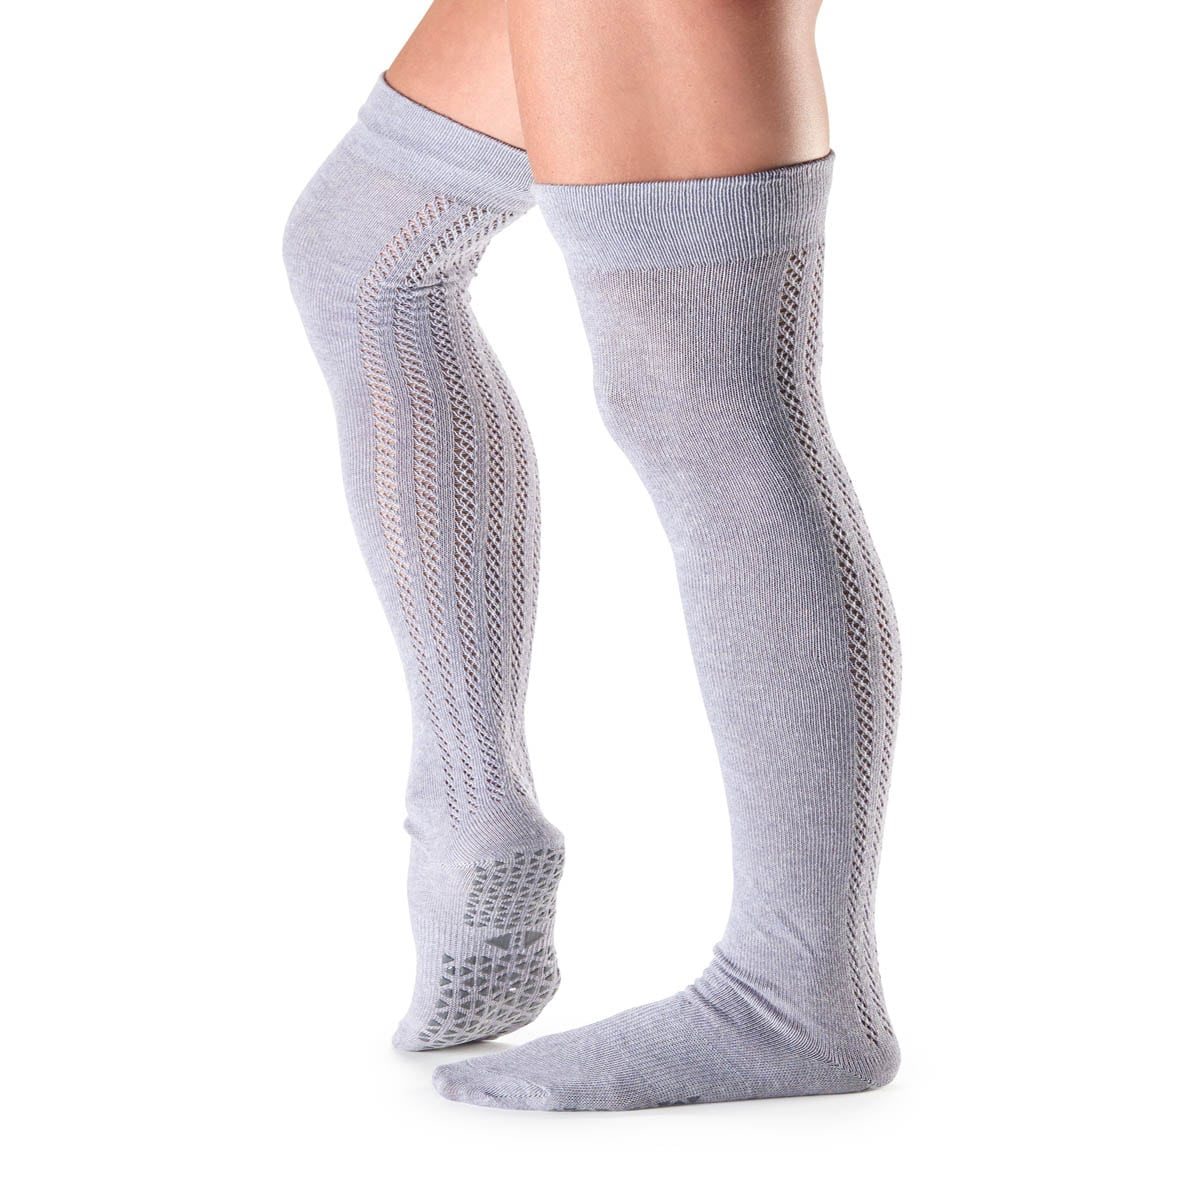 ea6ce5c81c199 Tavi Noir Kris Over the Knee High Grip Socks